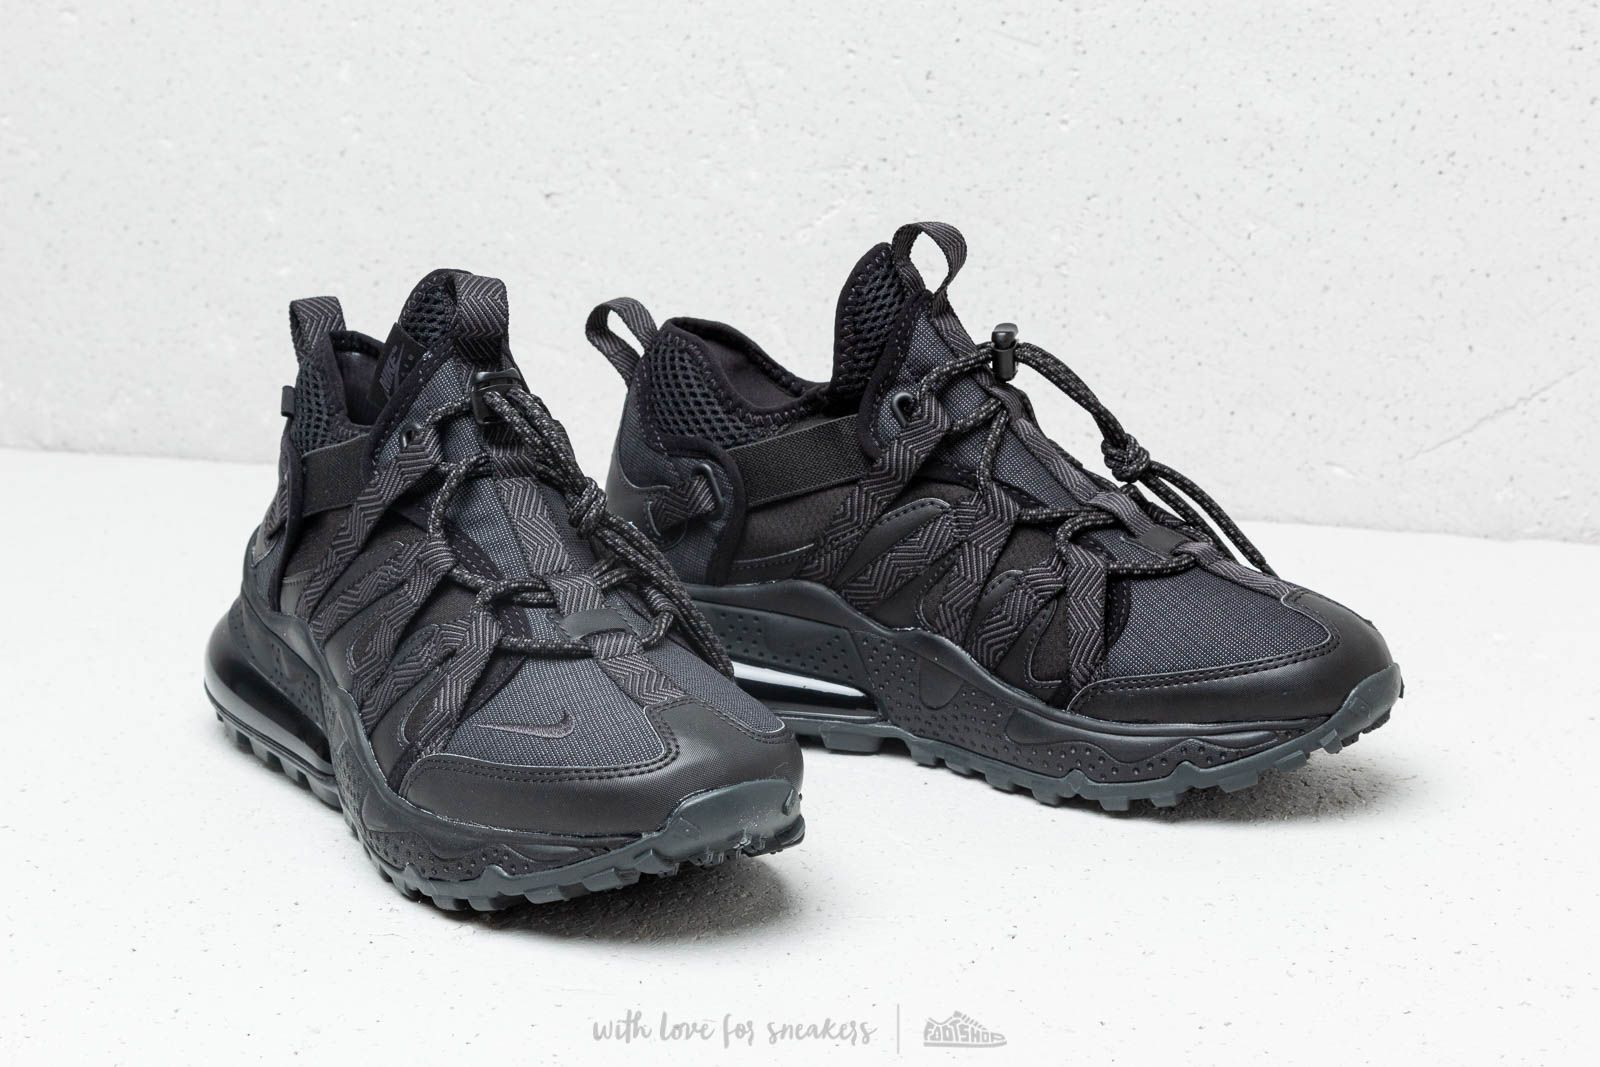 8ff09c9481f Nike Air Max 270 Bowfin Black  Anthracite-Black at a great price 165 €